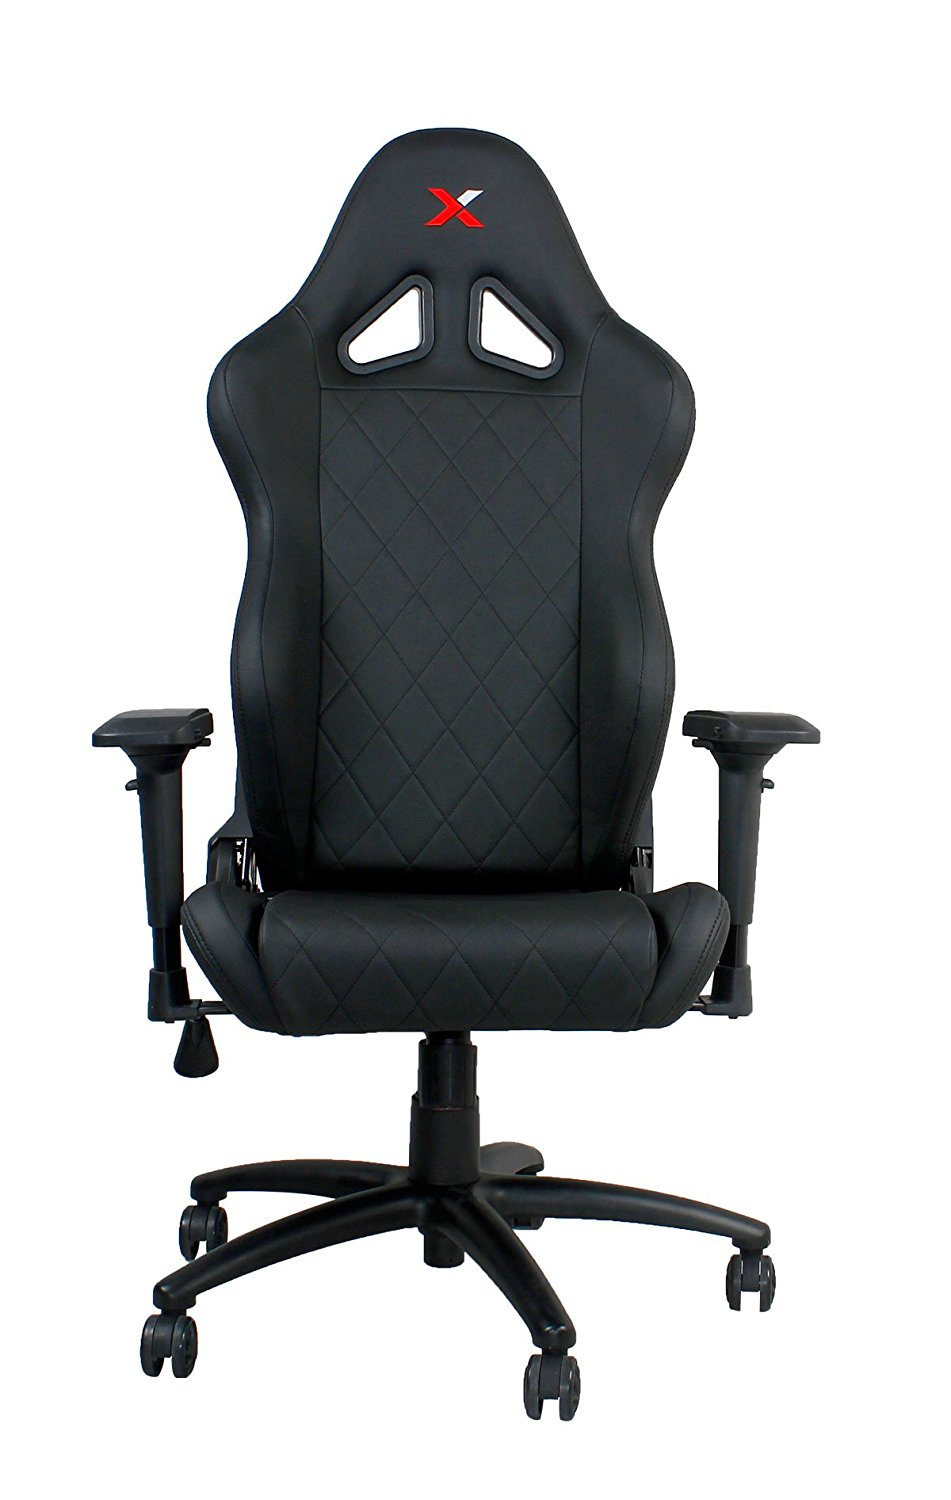 executive racing style gaming chair for pc